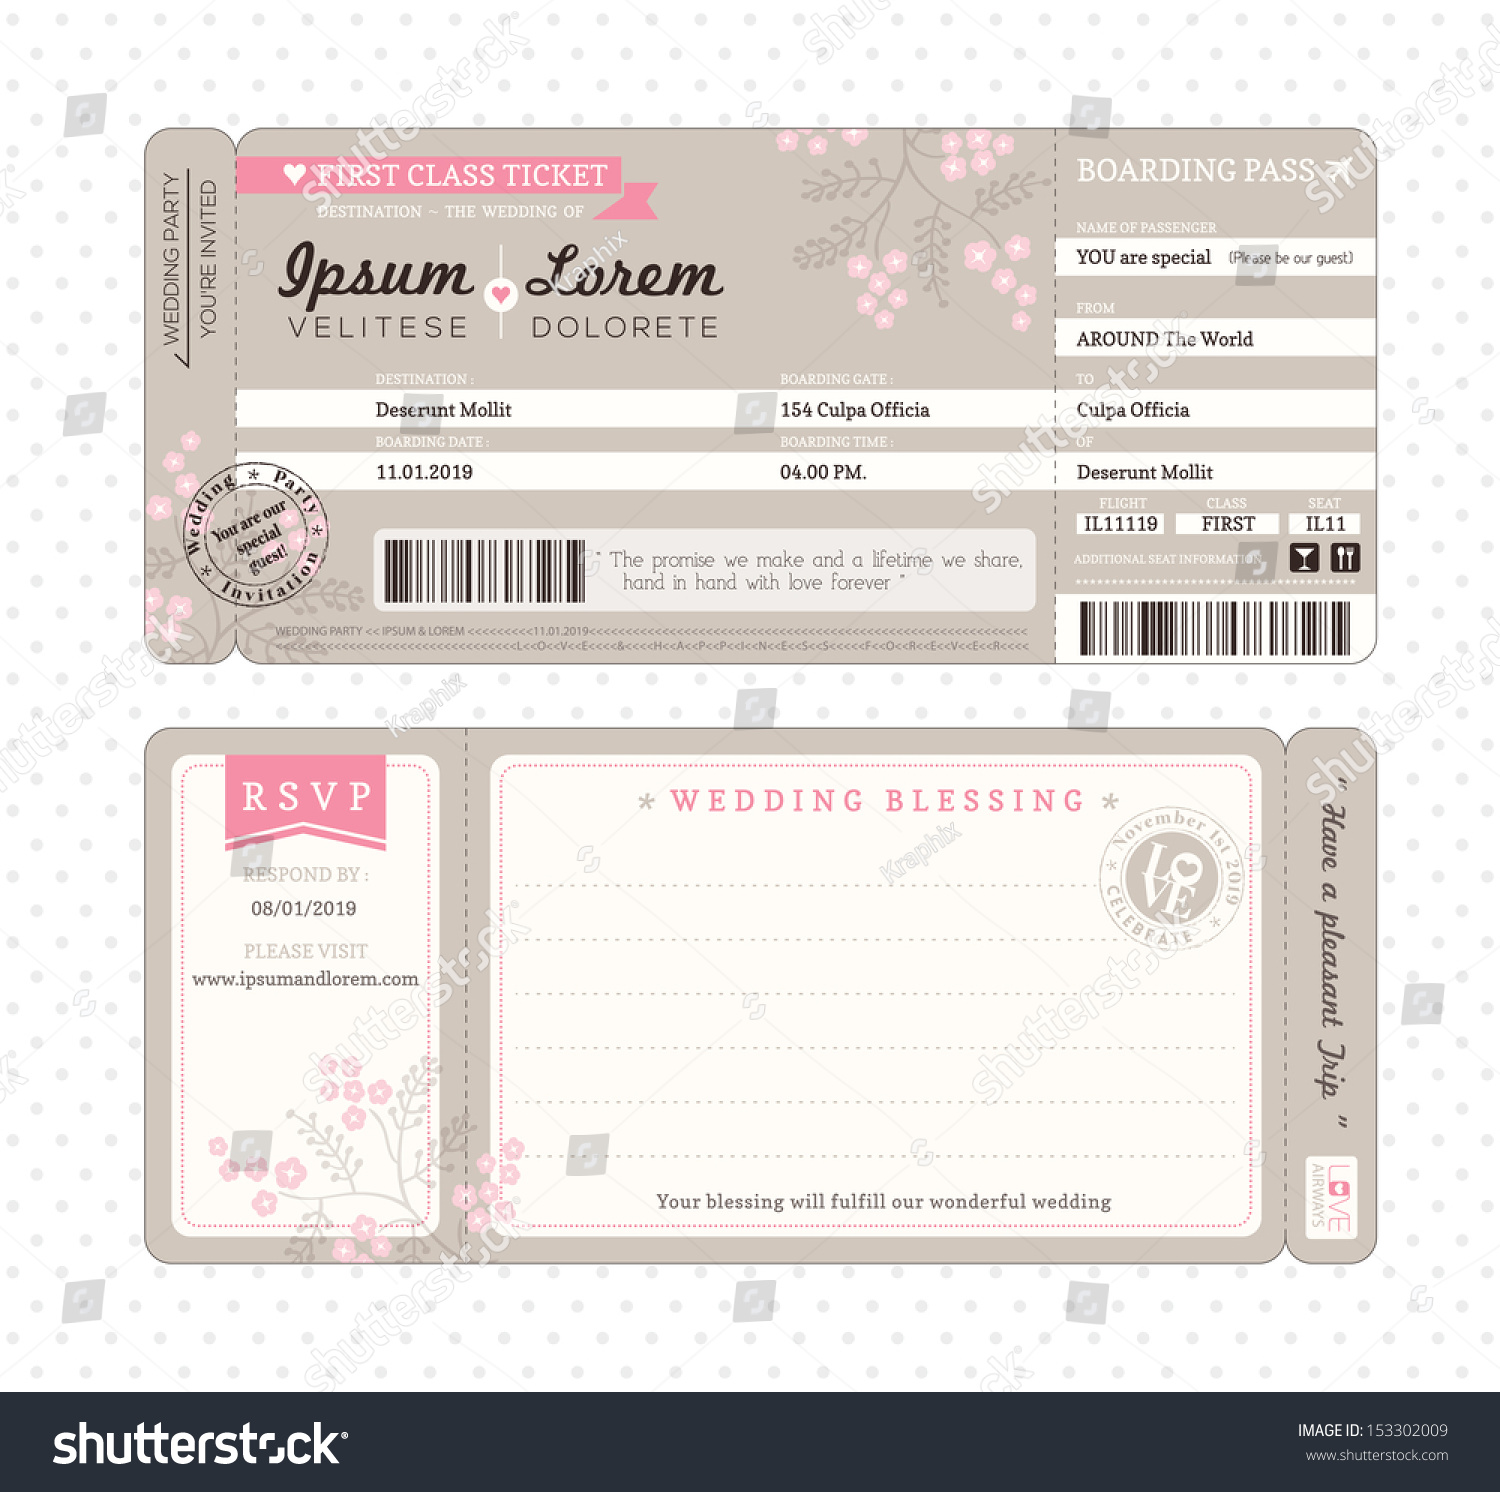 Boarding Pass Ticket Wedding Invitation Template Stock ...